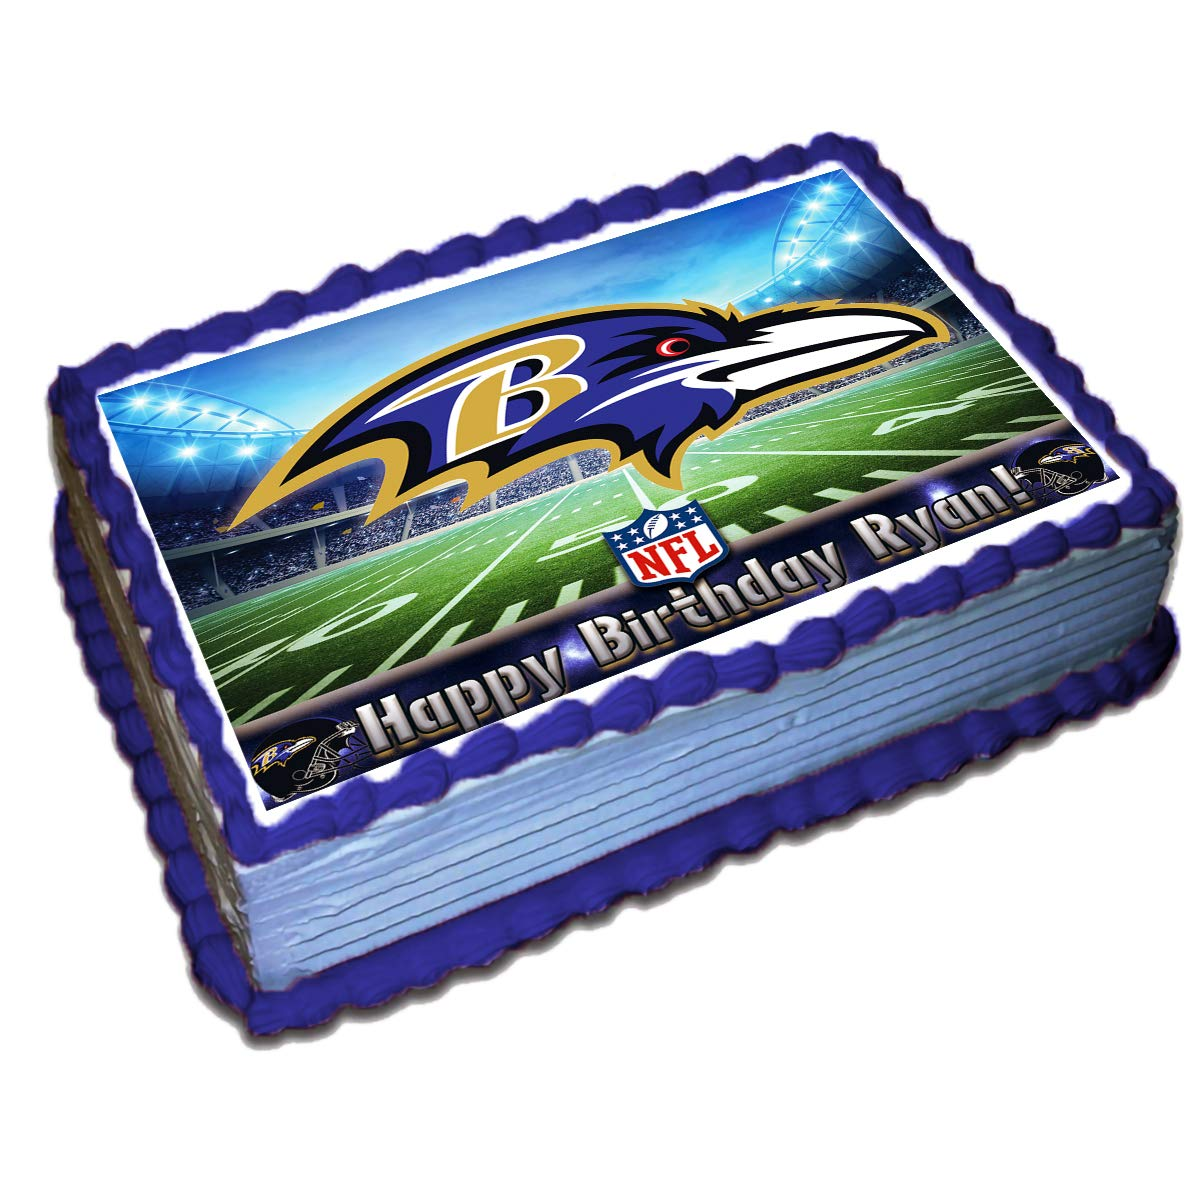 Stupendous Baltimore Ravens Nfl Personalized Cake Topper Icing Sugar Paper 1 Birthday Cards Printable Opercafe Filternl